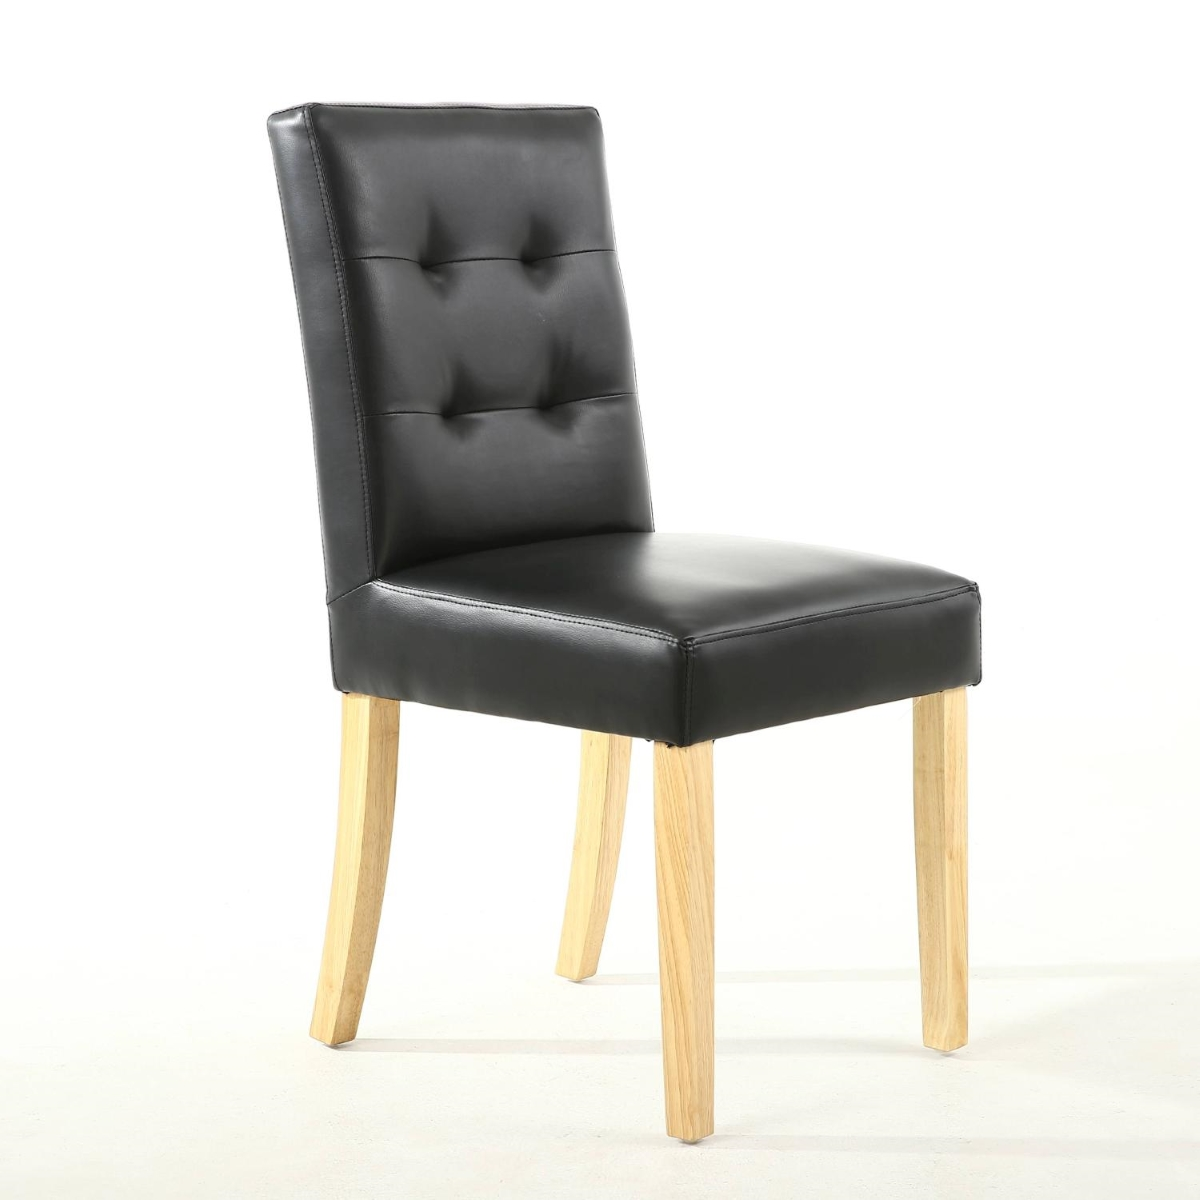 Dining Chairs Shankar Espresso Style 010 Black Bonded  : shankarespressodiningchair010 07 03 05 011 1200x1200 from www.121homefurniture.co.uk size 1200 x 1200 jpeg 248kB